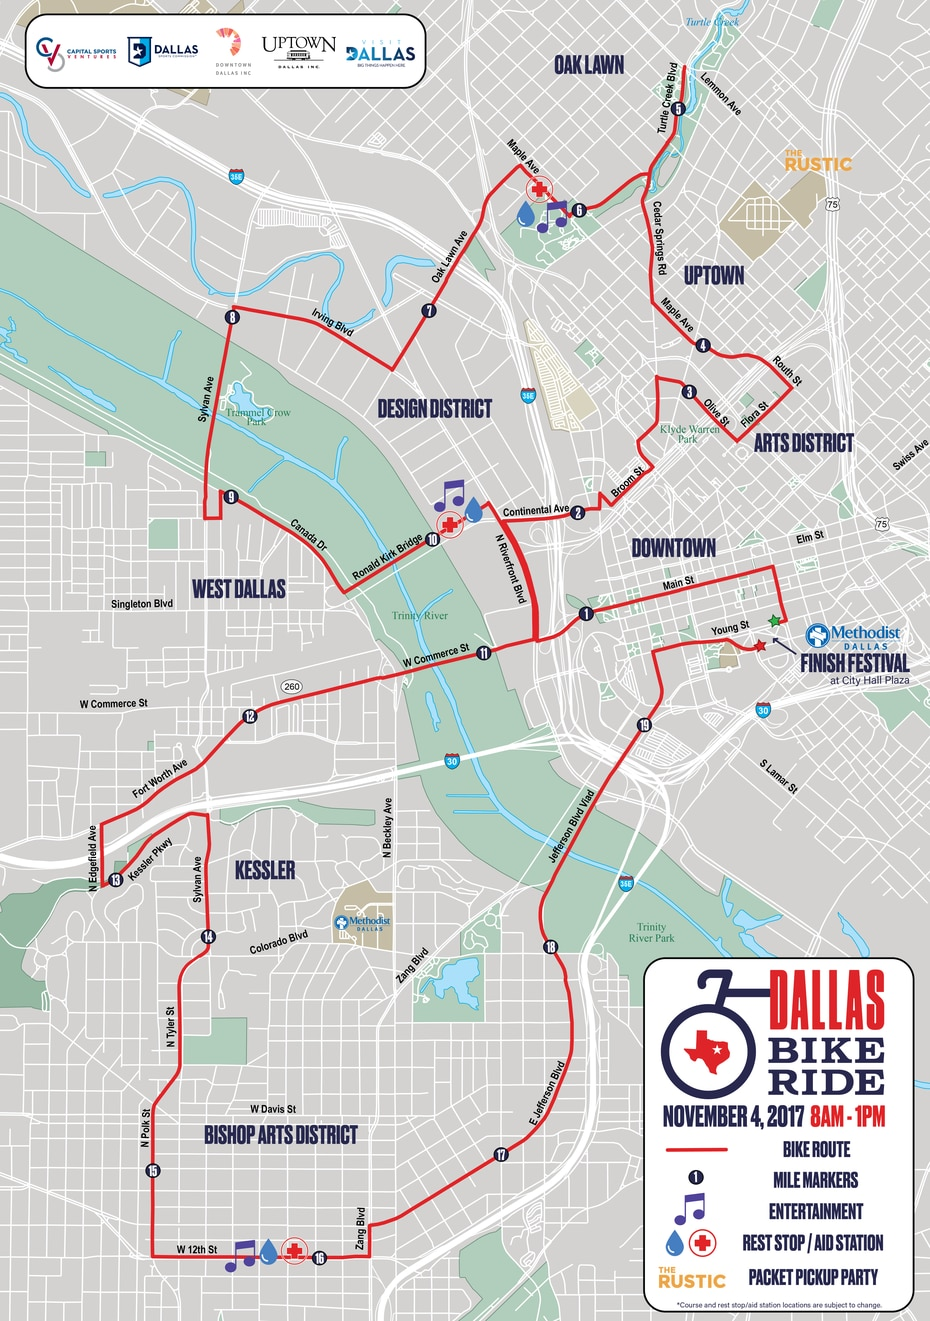 The course for the first Dallas Bike Ride traverses 20 closed city streets, showcasing many neighborhoods in Dallas.